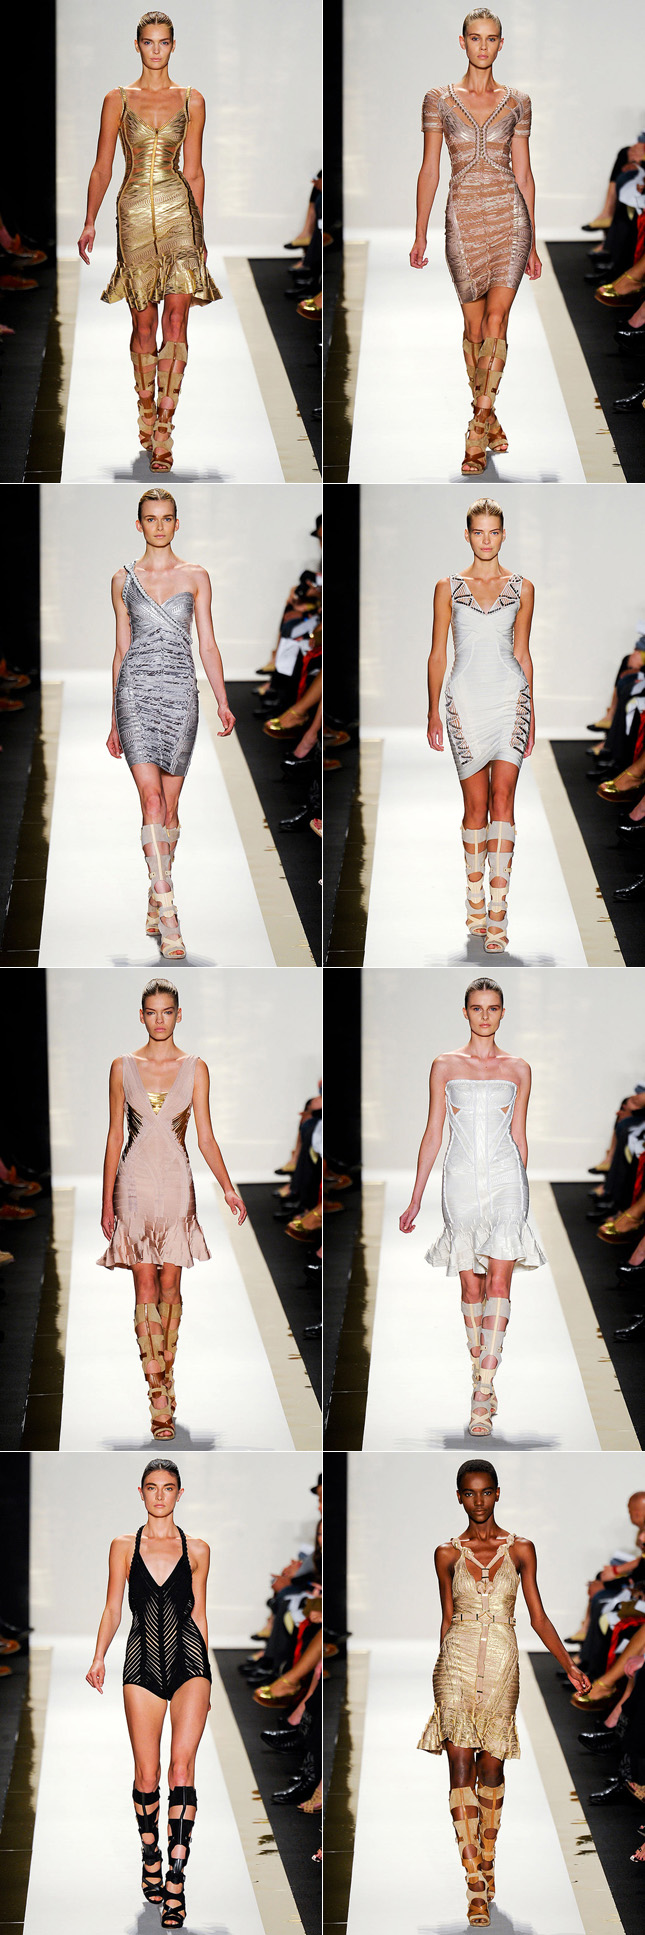 Desfile Herve Leger NYFW Verão 2012 New York Fashion Week